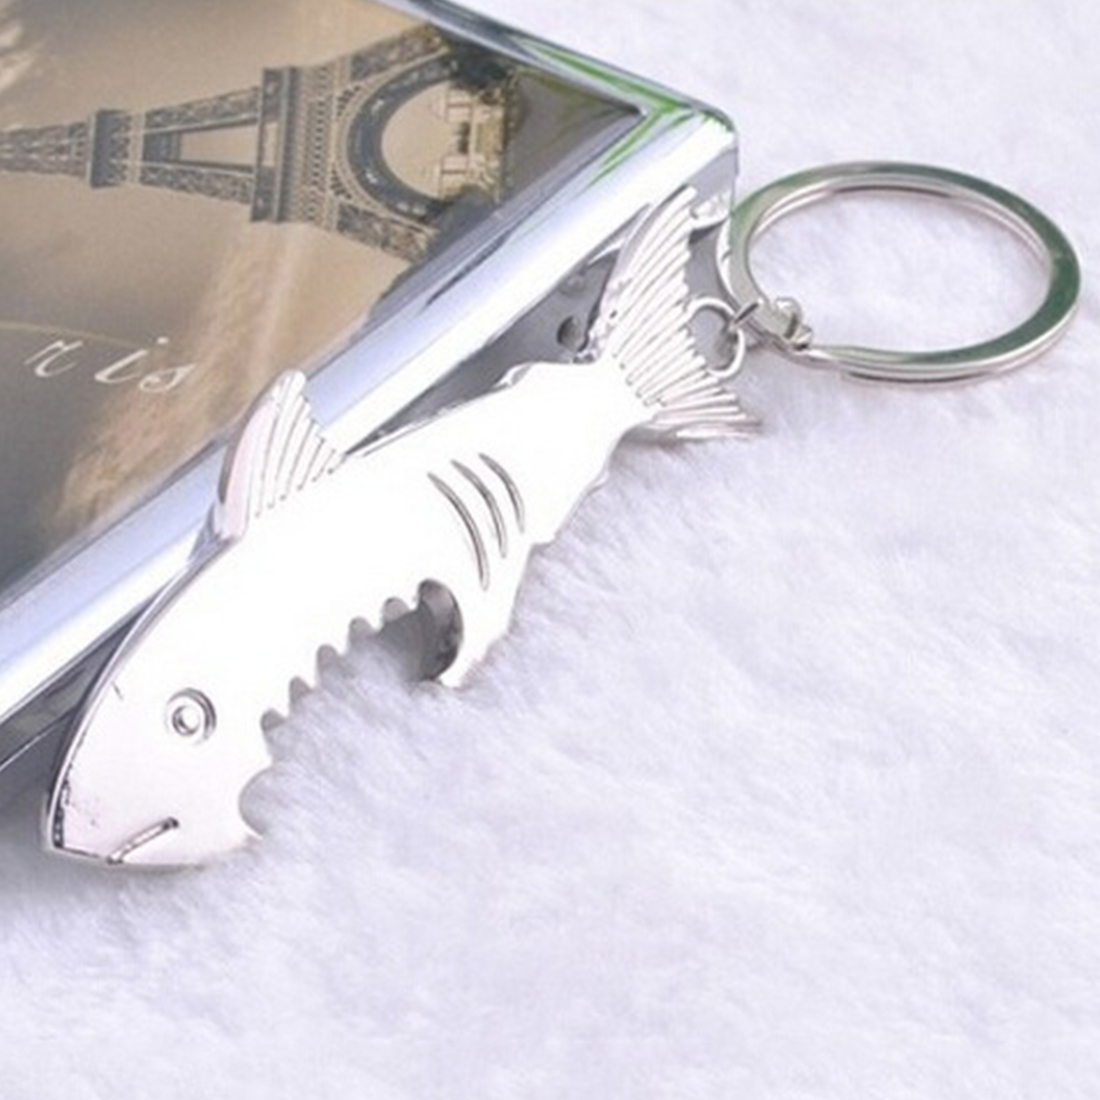 Shark Shaped Bottle Opener Keychain Zinc Alloy Silver Color Key Ring Beer Bottle Opener Outdoor Tools Camping Equipment